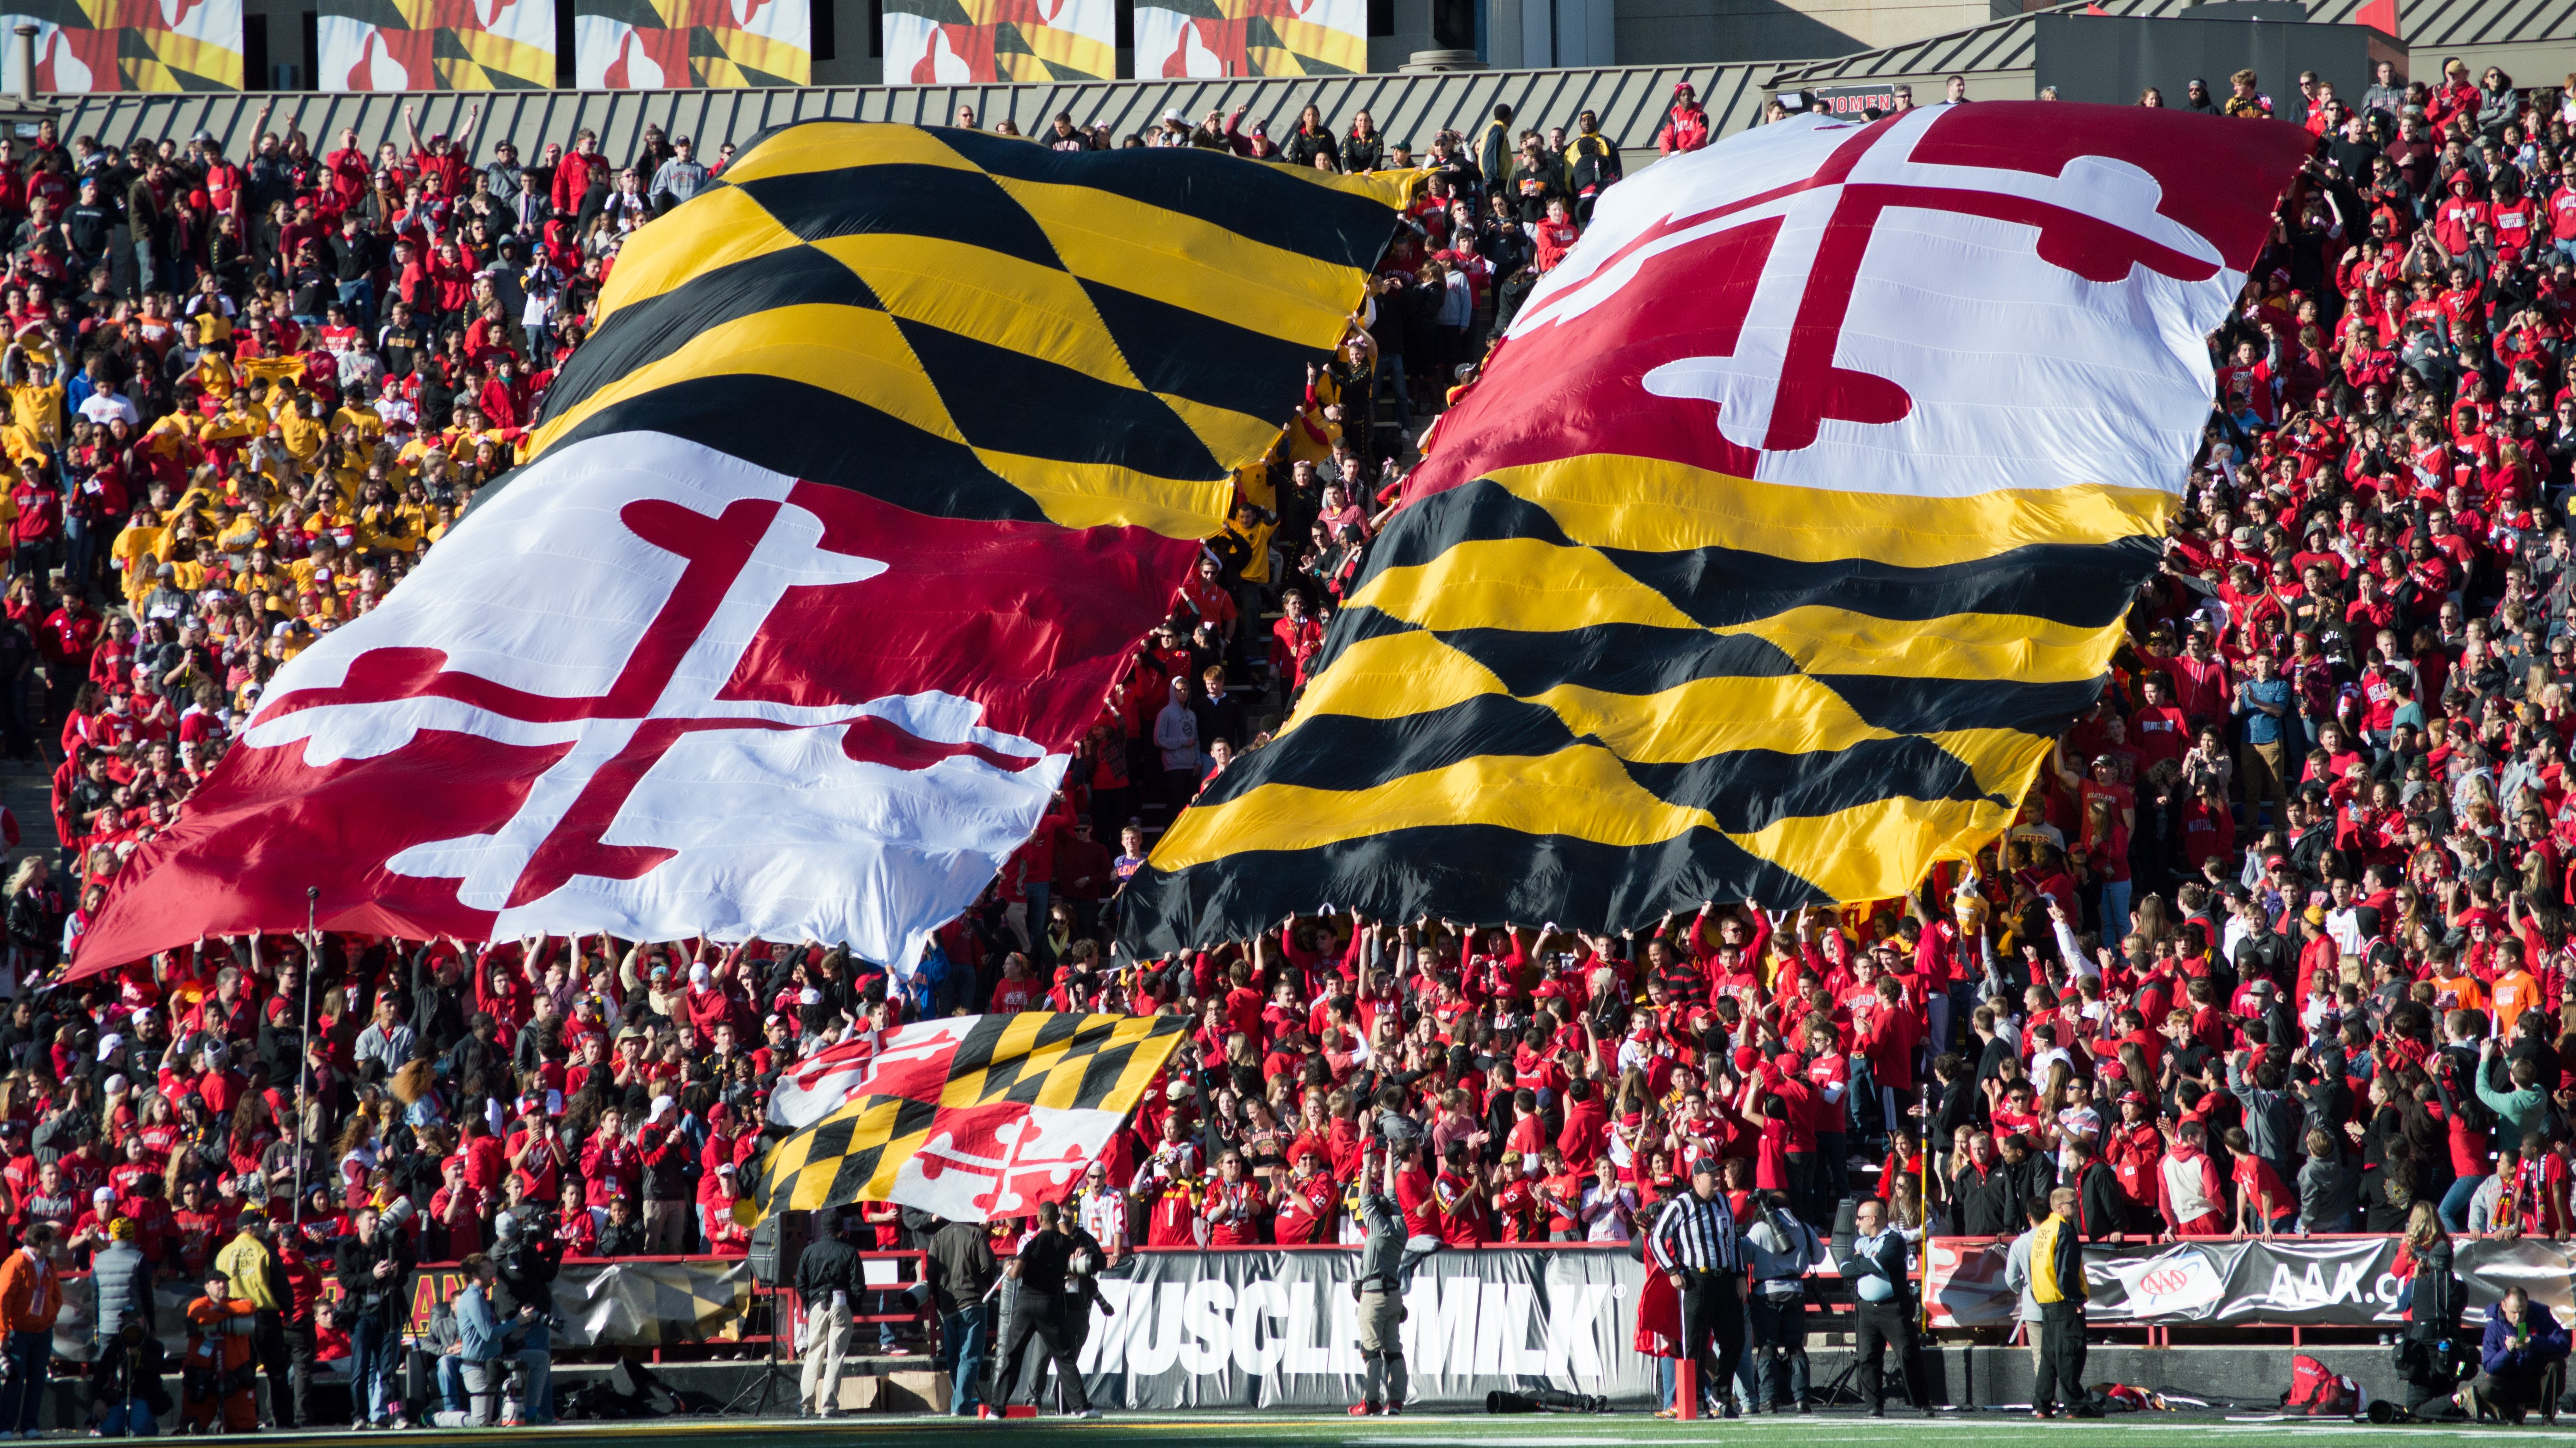 MARYLAND TERRAPINS college football wallpaper background 6016x3382